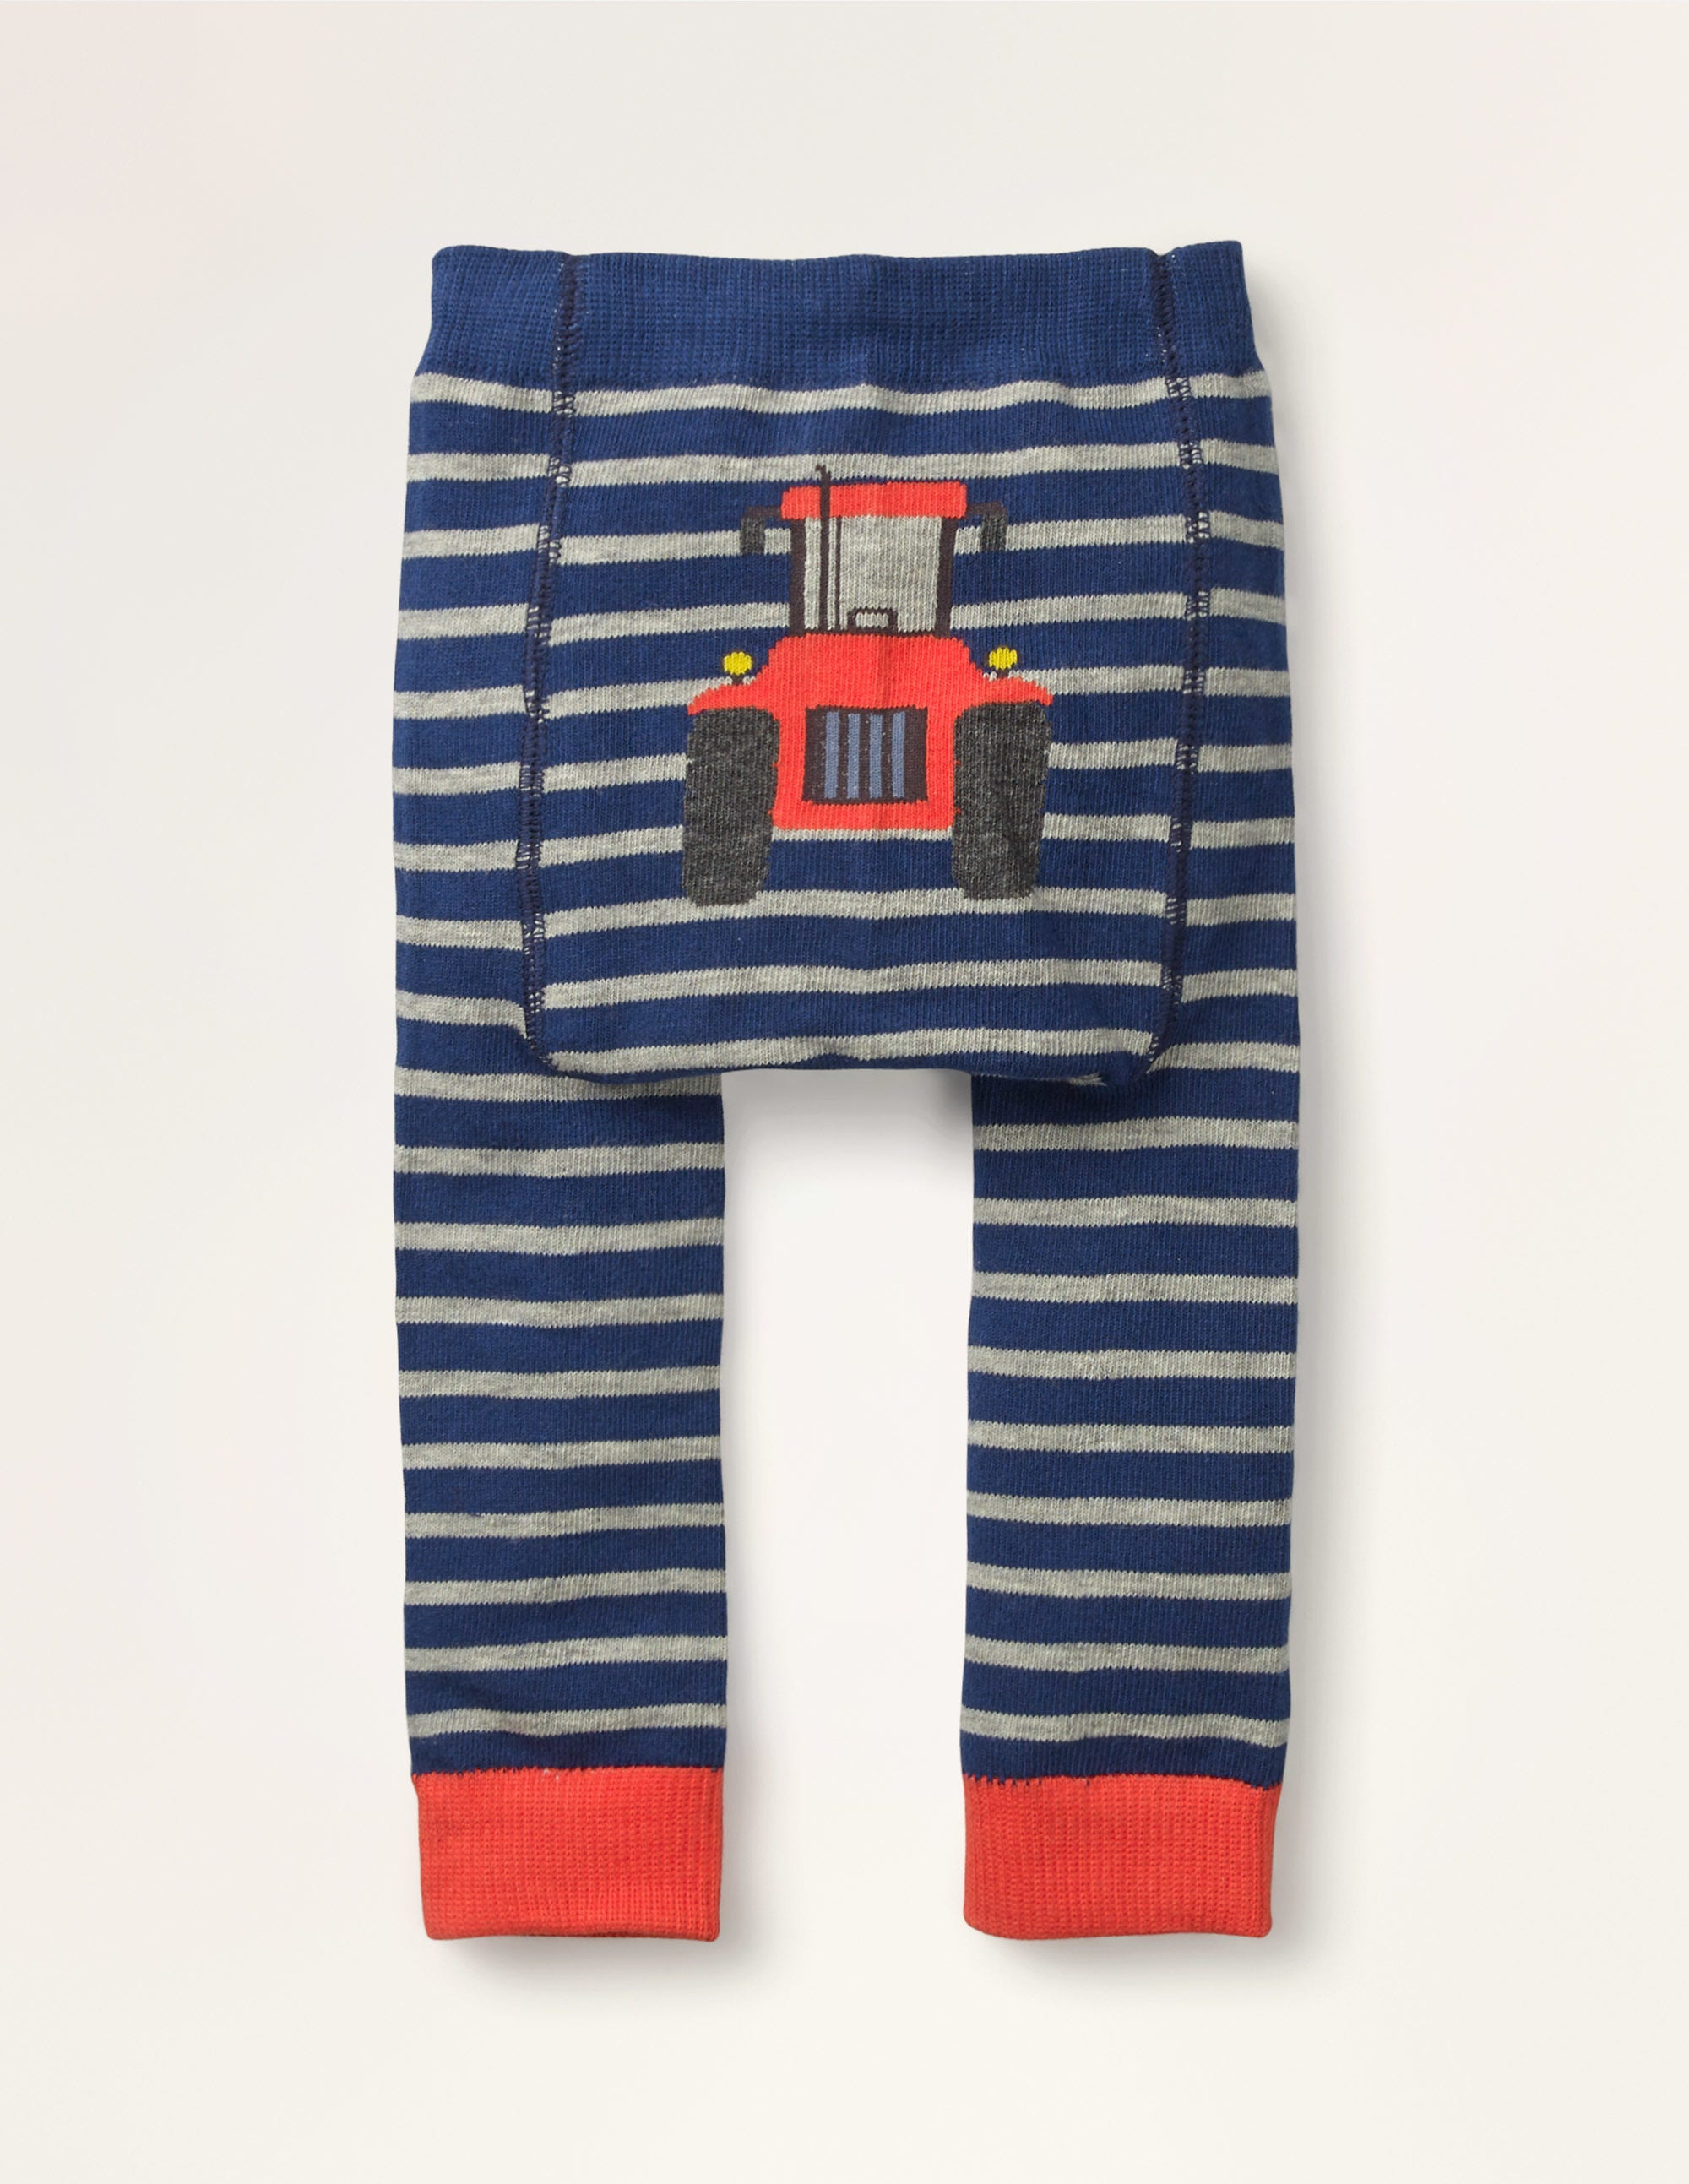 Brand new BUY 2, GET 1 FREE Navy blue. Boden leggings for kids choose size